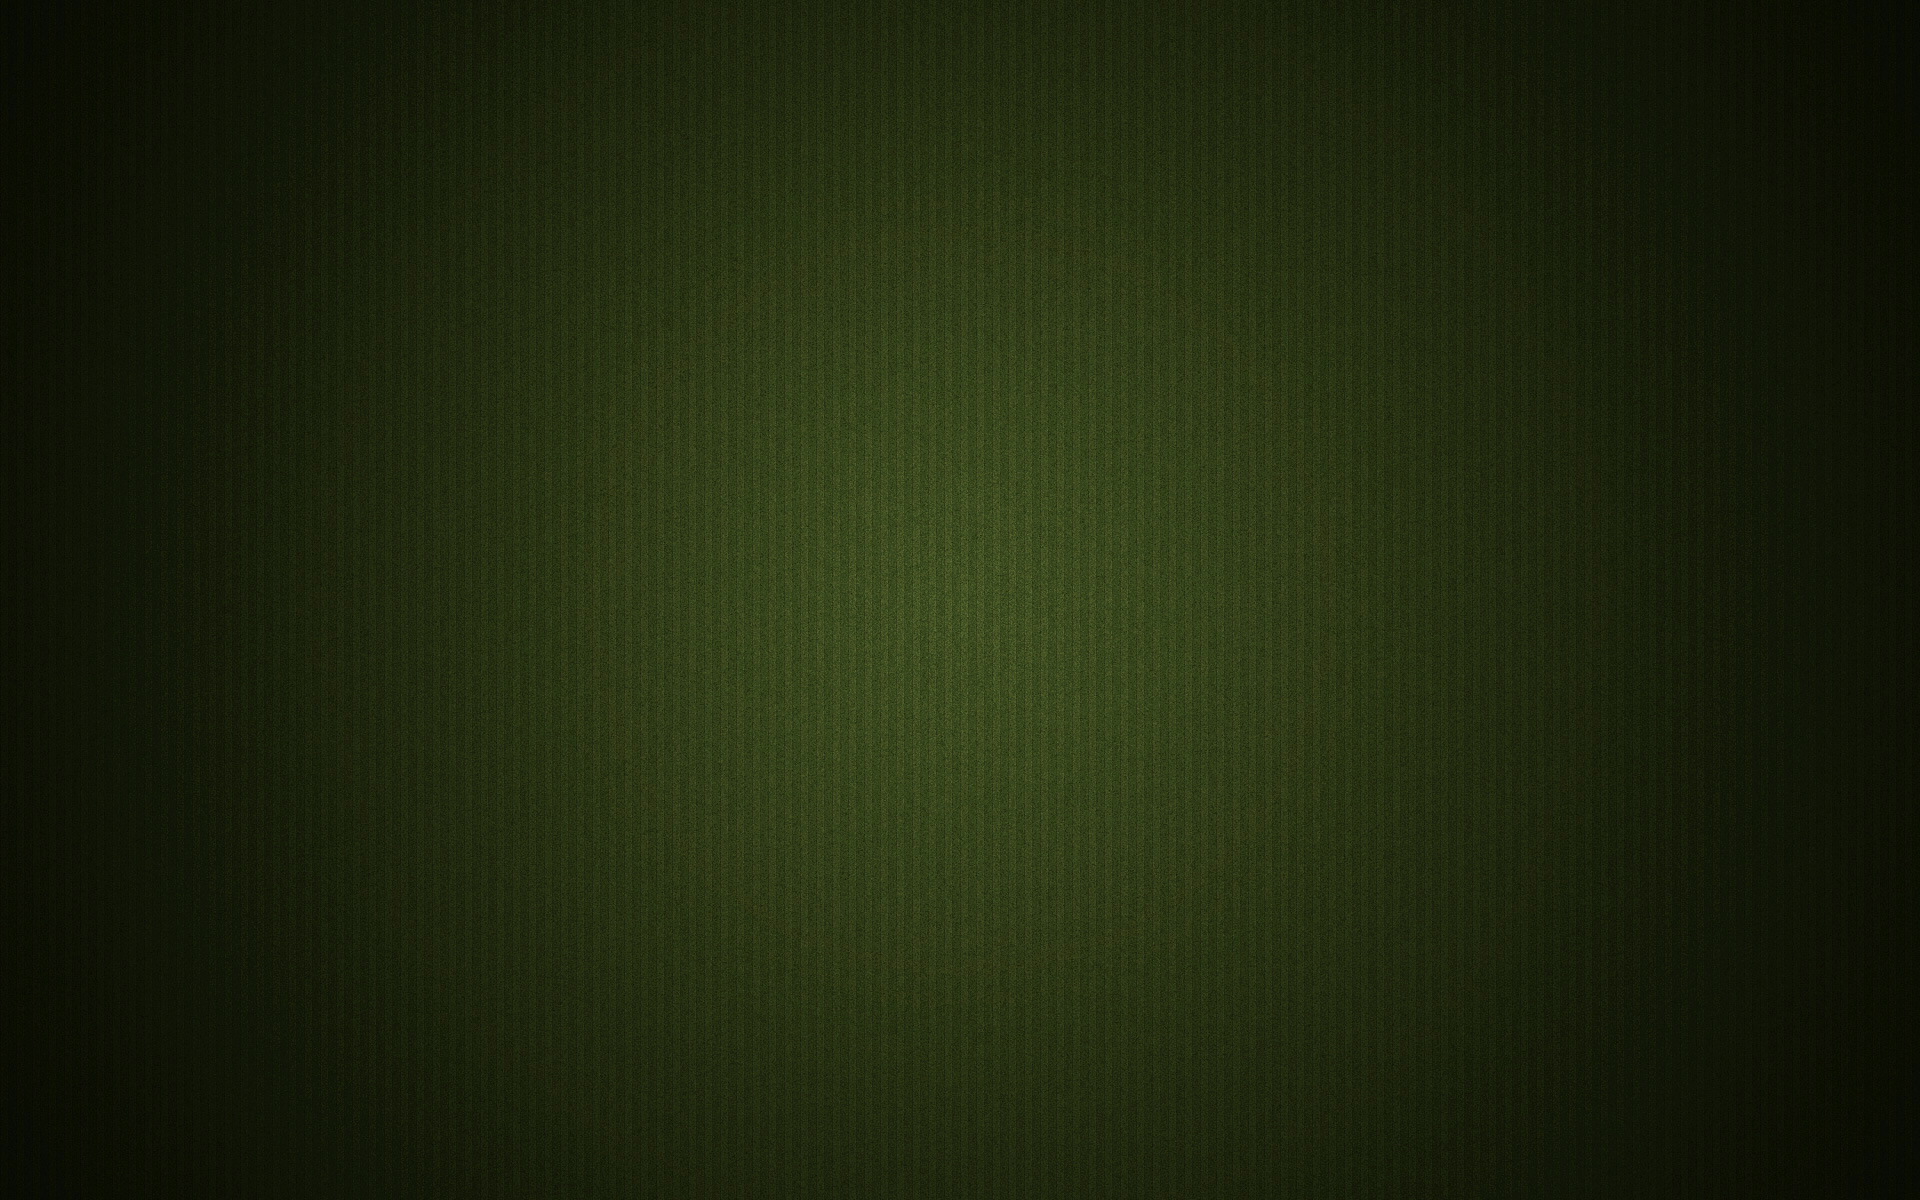 green grass texture, background, download photo, texture, background, green grass